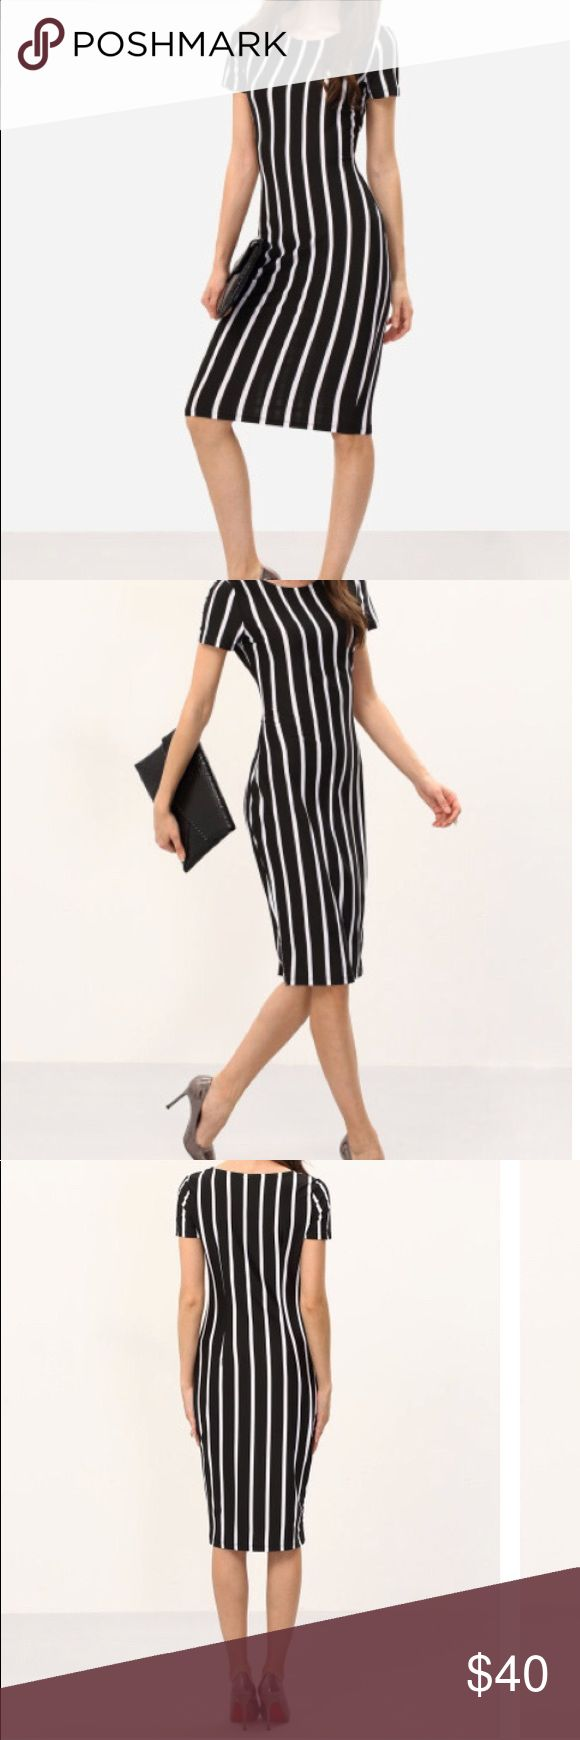 Fitted dress 🌺🌺🌺🌺🌺🌺🌺🌺💕💕💕💕💕 Stripe dress sexy yet sophisticated 🌺🌺🌺💕💕💕💕💕💕💕💕 Dresses Midi